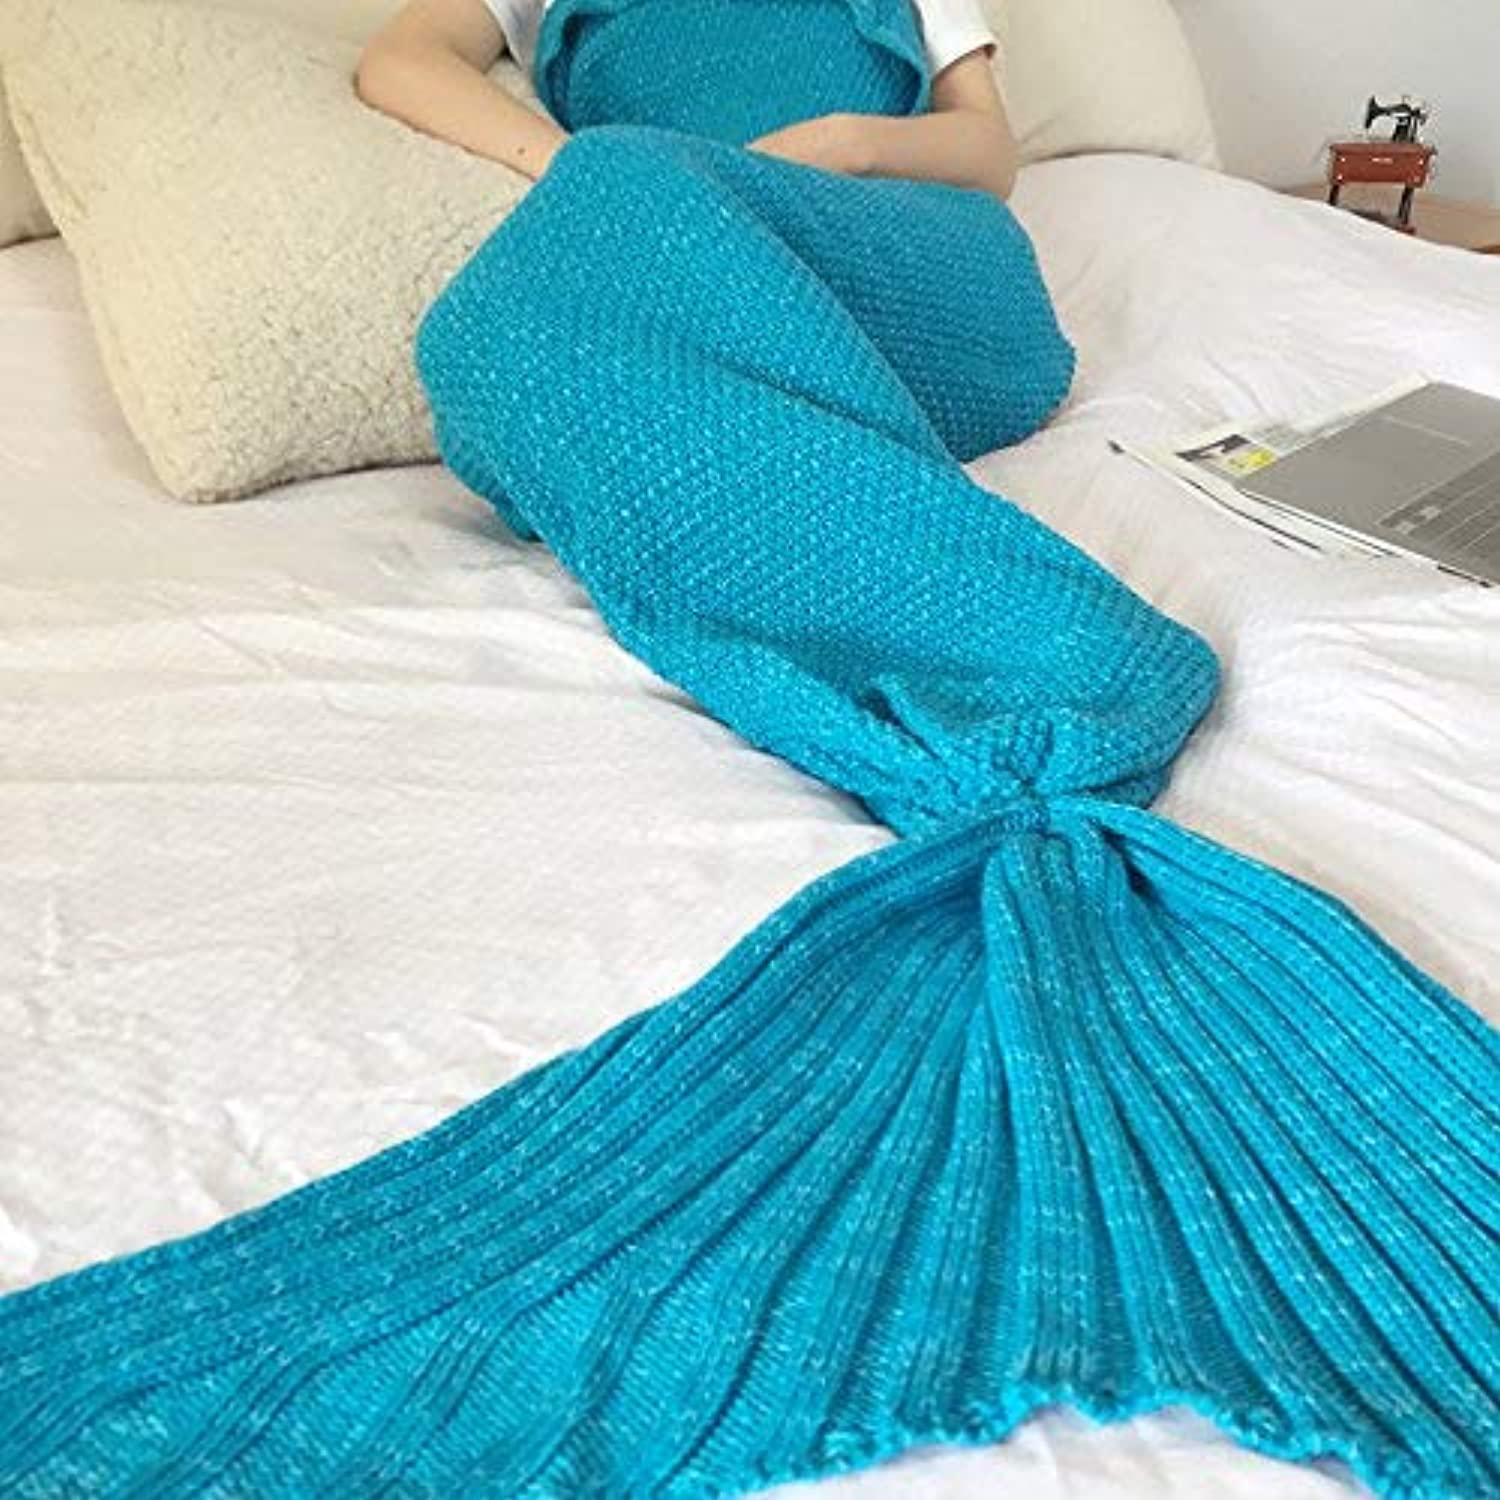 JINGB Home Mermaid Knit Mermaid Tail Sofa Birthday Gift, purple bluee, 195  95CM (76.8  37.4 inch) (color   The bluee, Size   195  95CM)